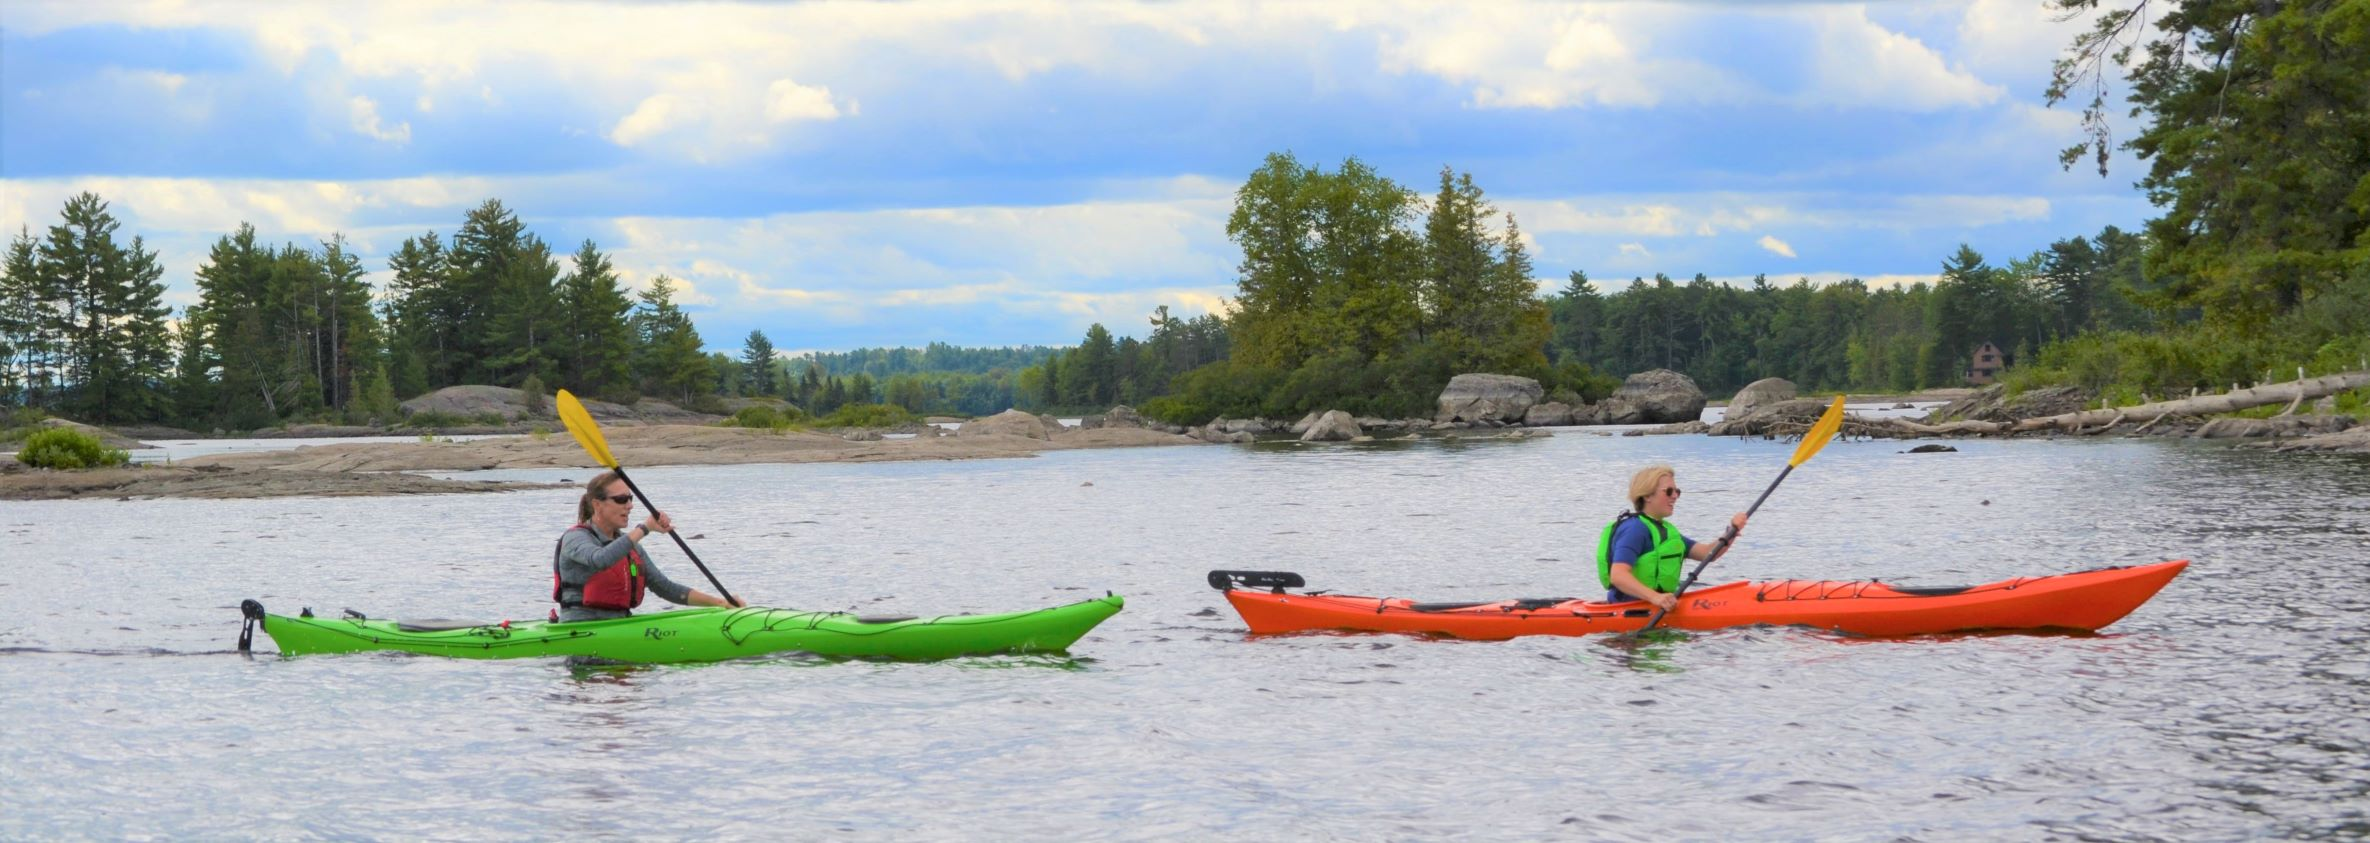 Image of 2 kayakers on the Ottawa River